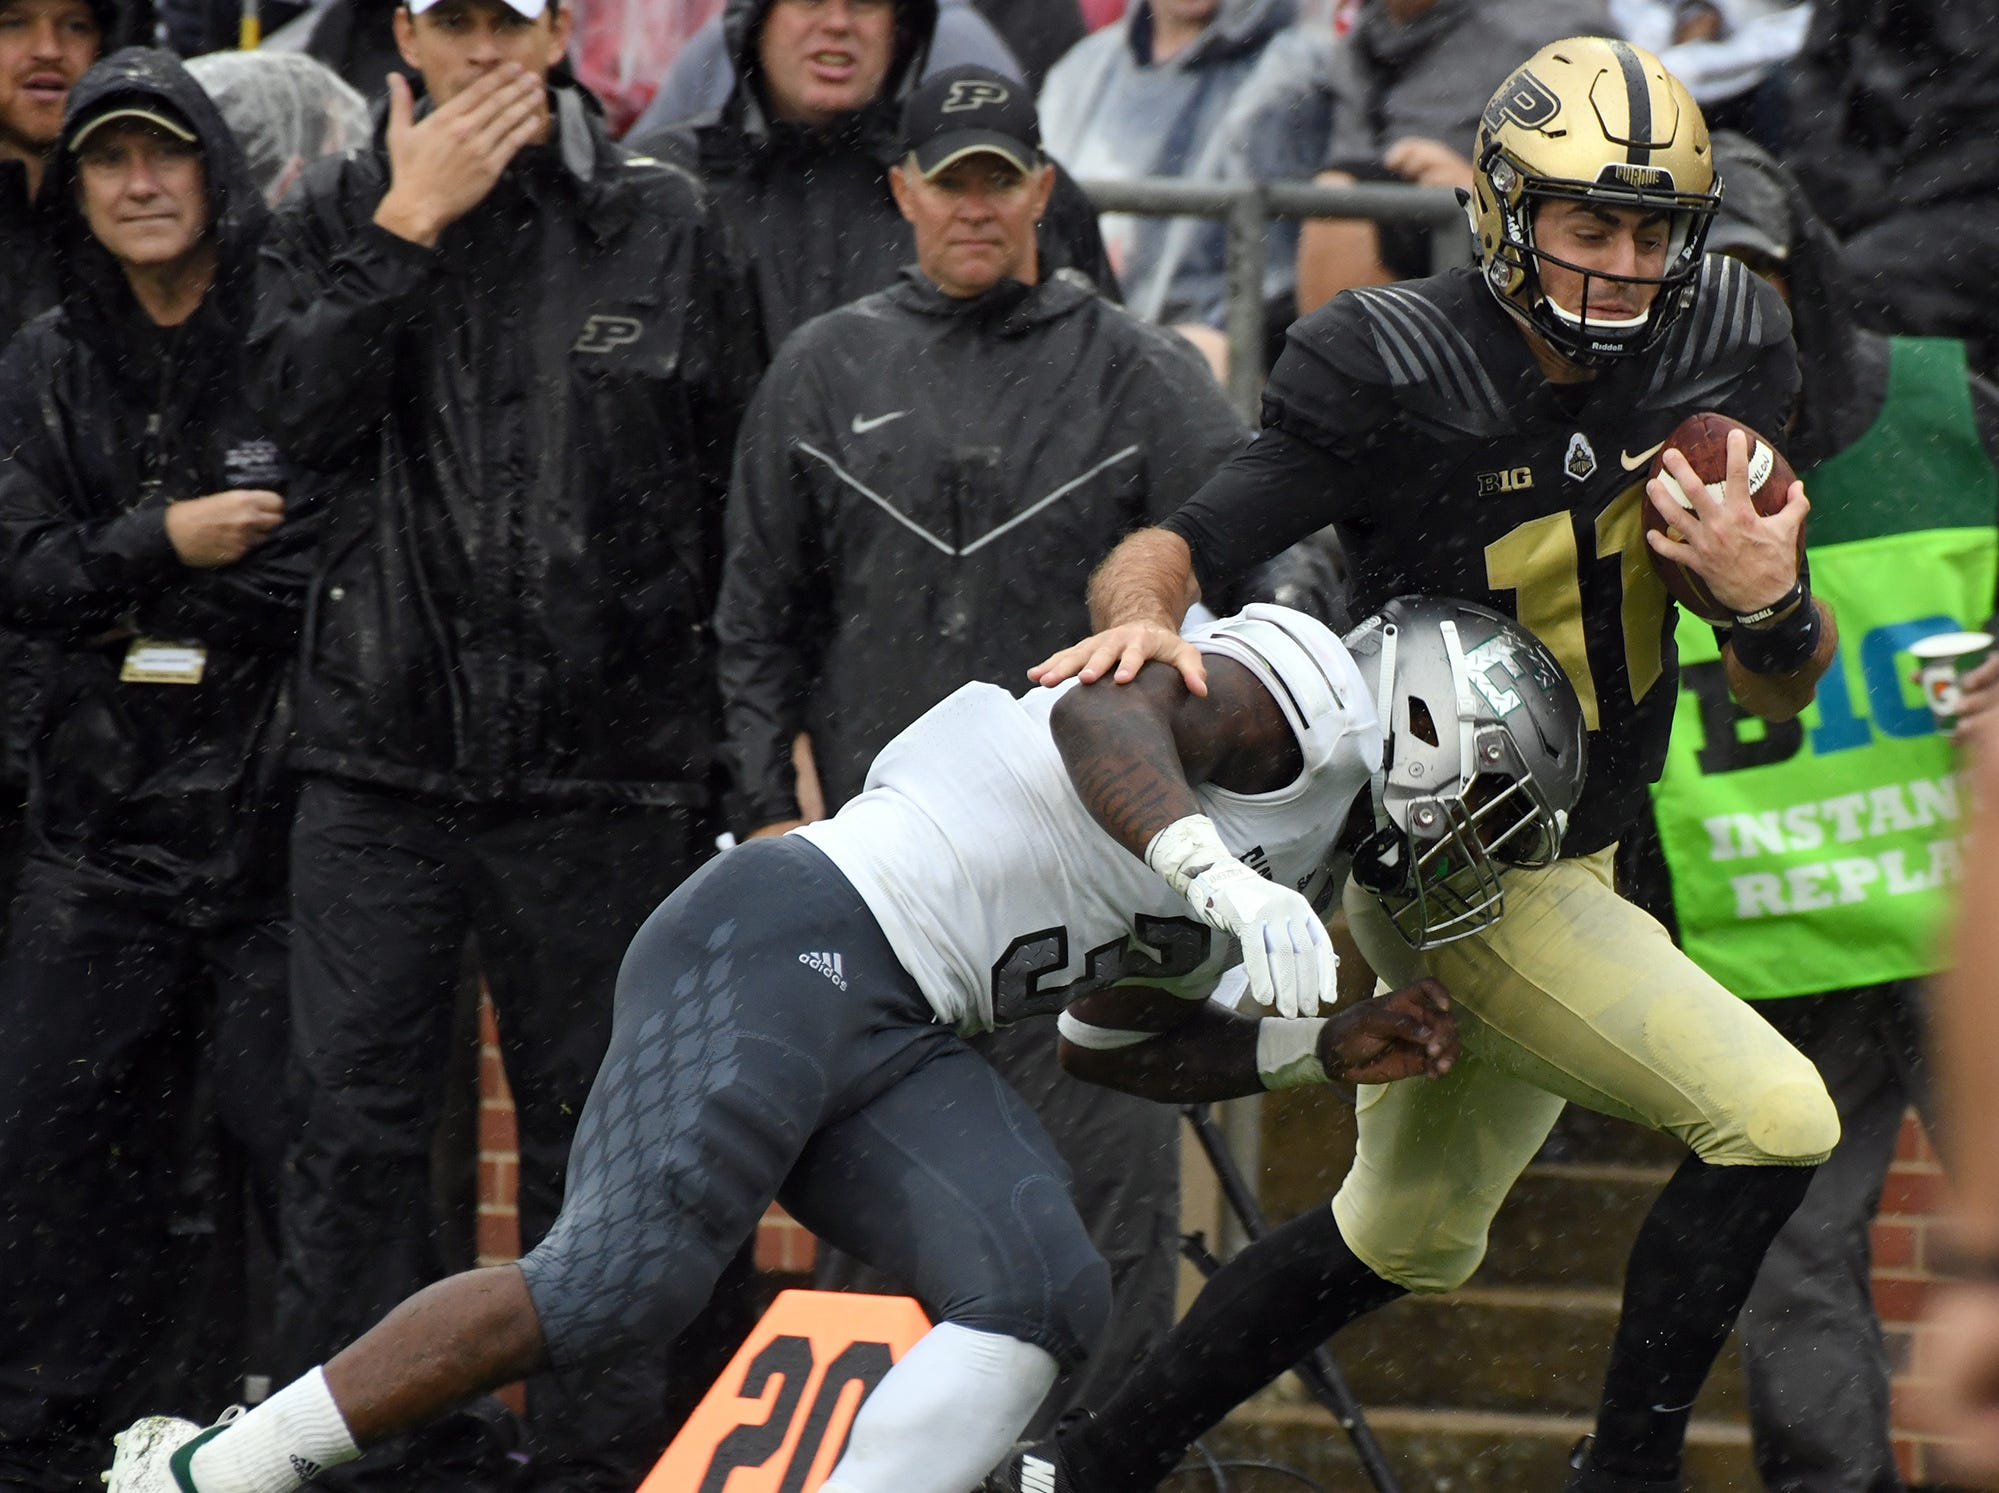 Purdue's David Blough runs for yardage against Eastern Michigan in West Lafayette on September 8, 2018. Purdue lost 20-19.